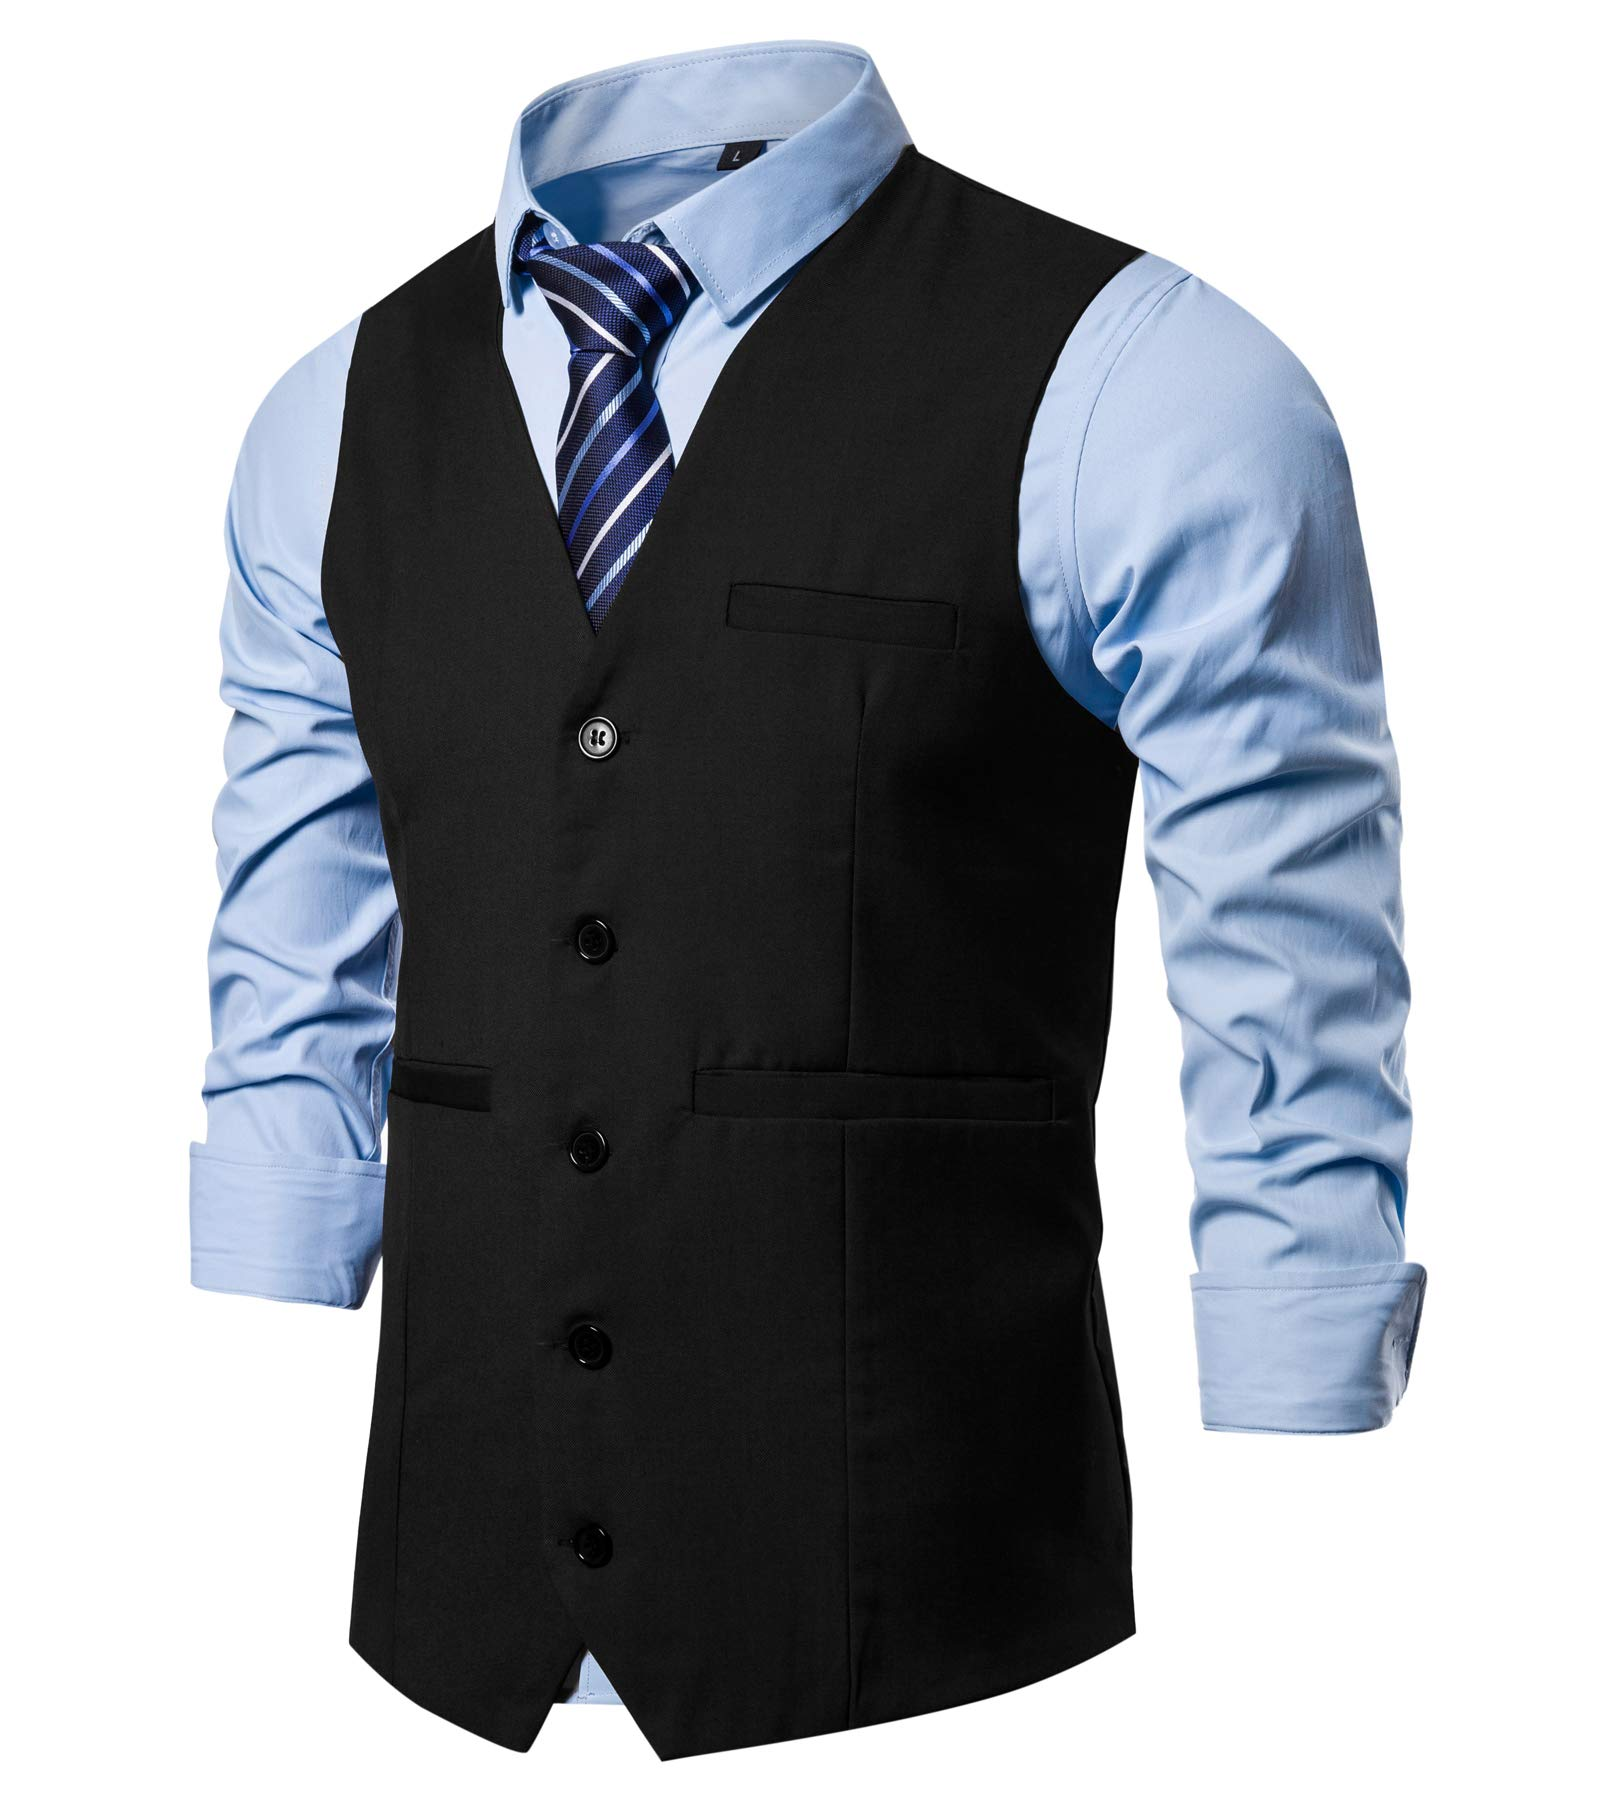 DONGD Mens Formal Suit Vest Business Dress Vest for Suit or Tuxedo Black by DONGD